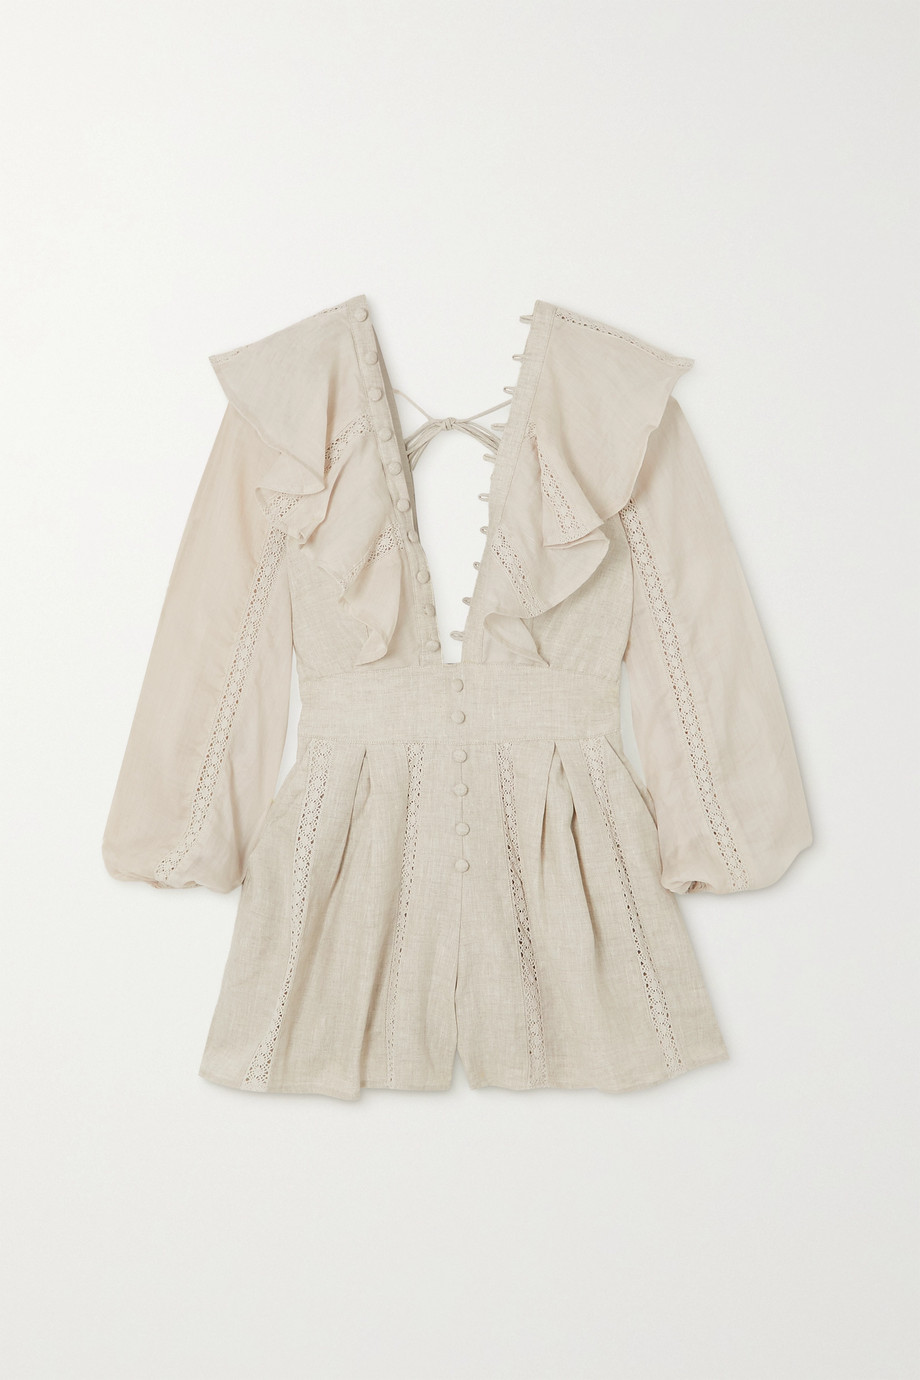 JOSLIN + NET SUSTAIN Maxine ruffled linen and ramie playsuit